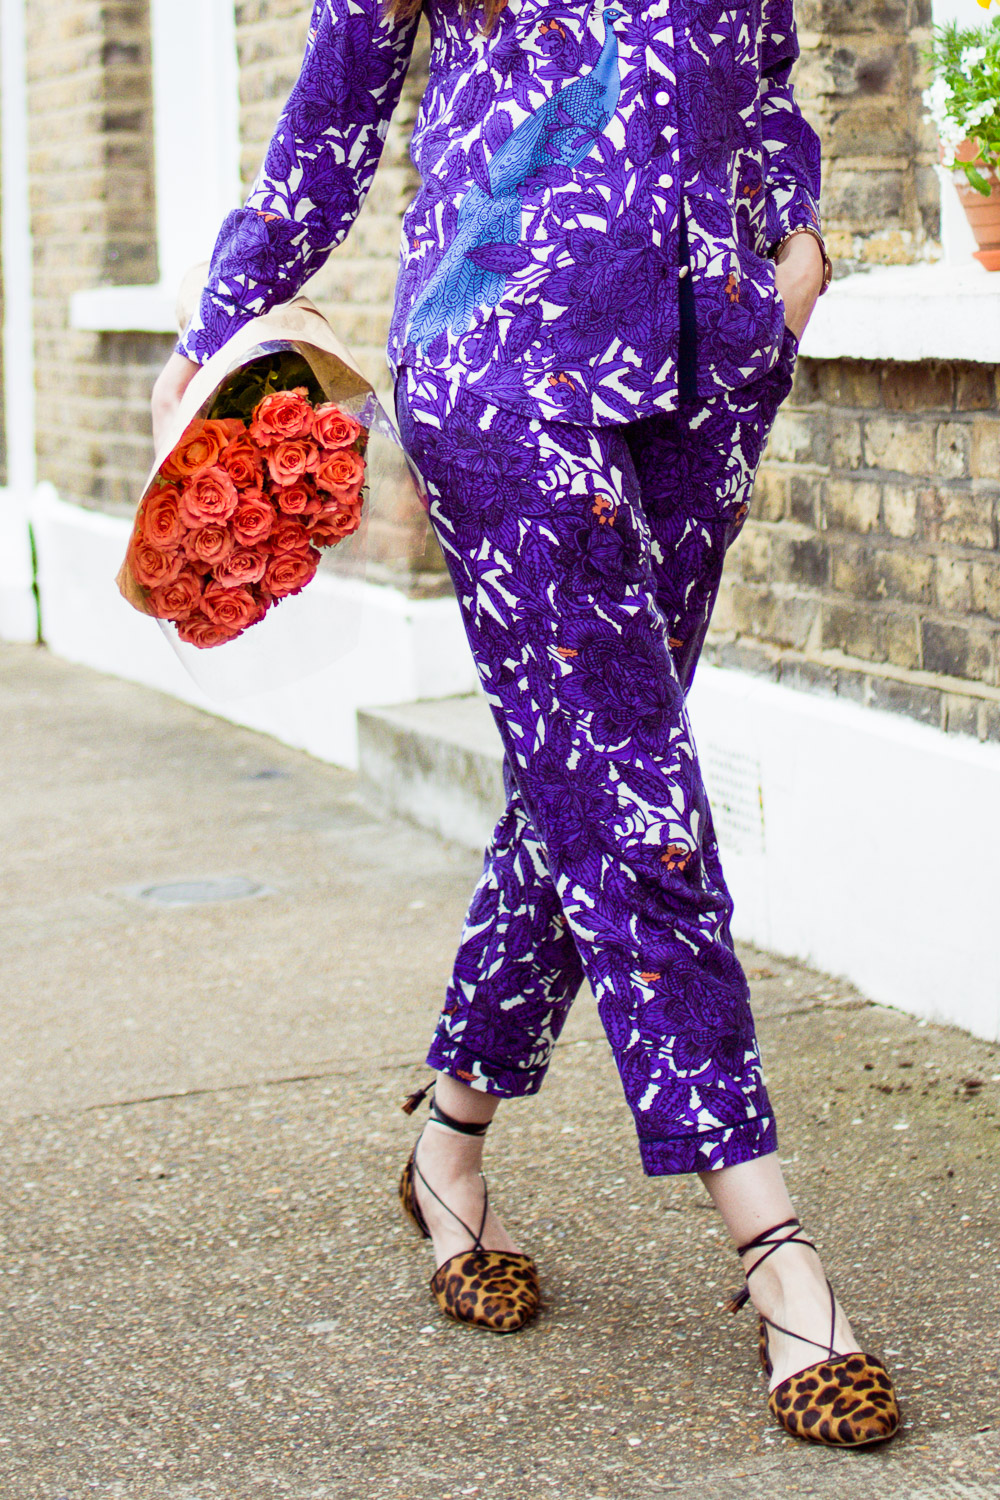 Vivienne trouser and shirt co-ord peacock print and leopard flats